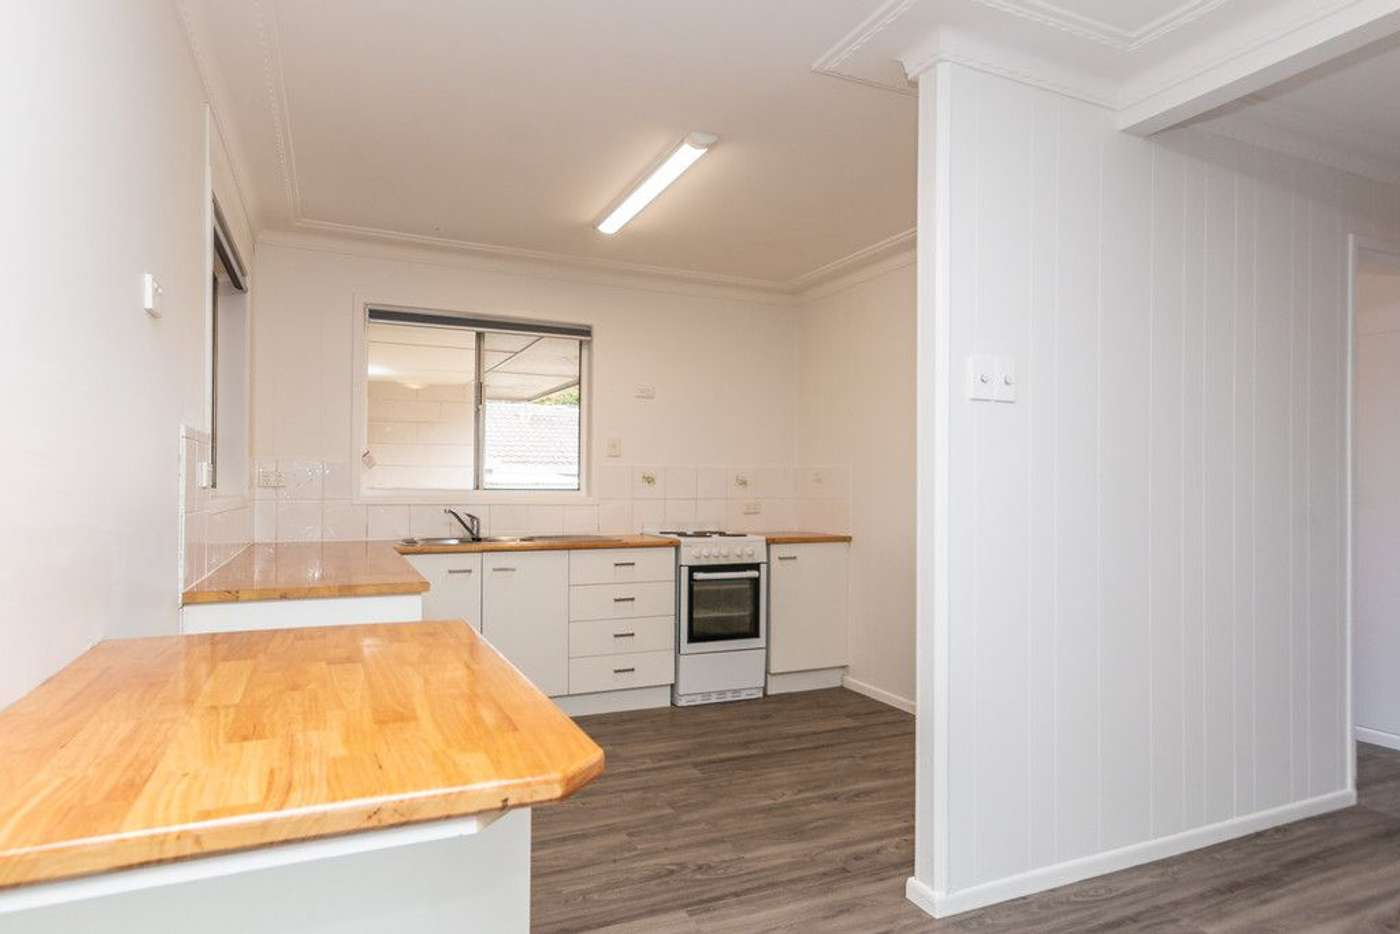 Seventh view of Homely house listing, 243 Anzac Avenue, Kippa-ring QLD 4021